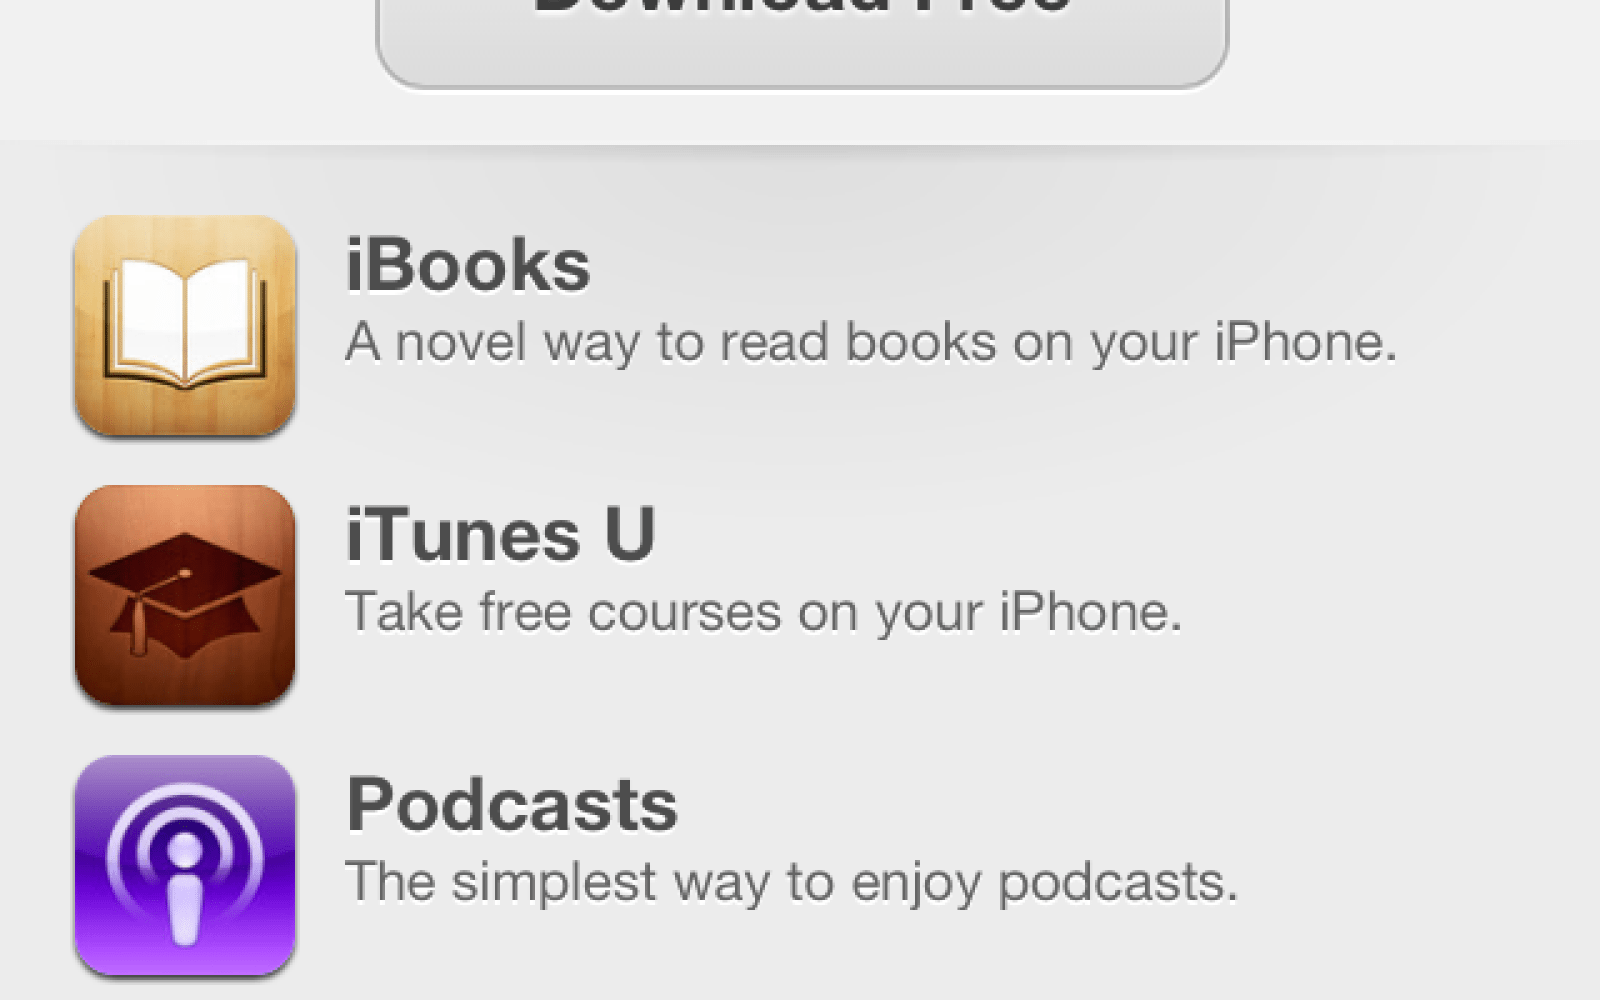 iOS 6 App Store tweaked to promote a one-tap installation of free